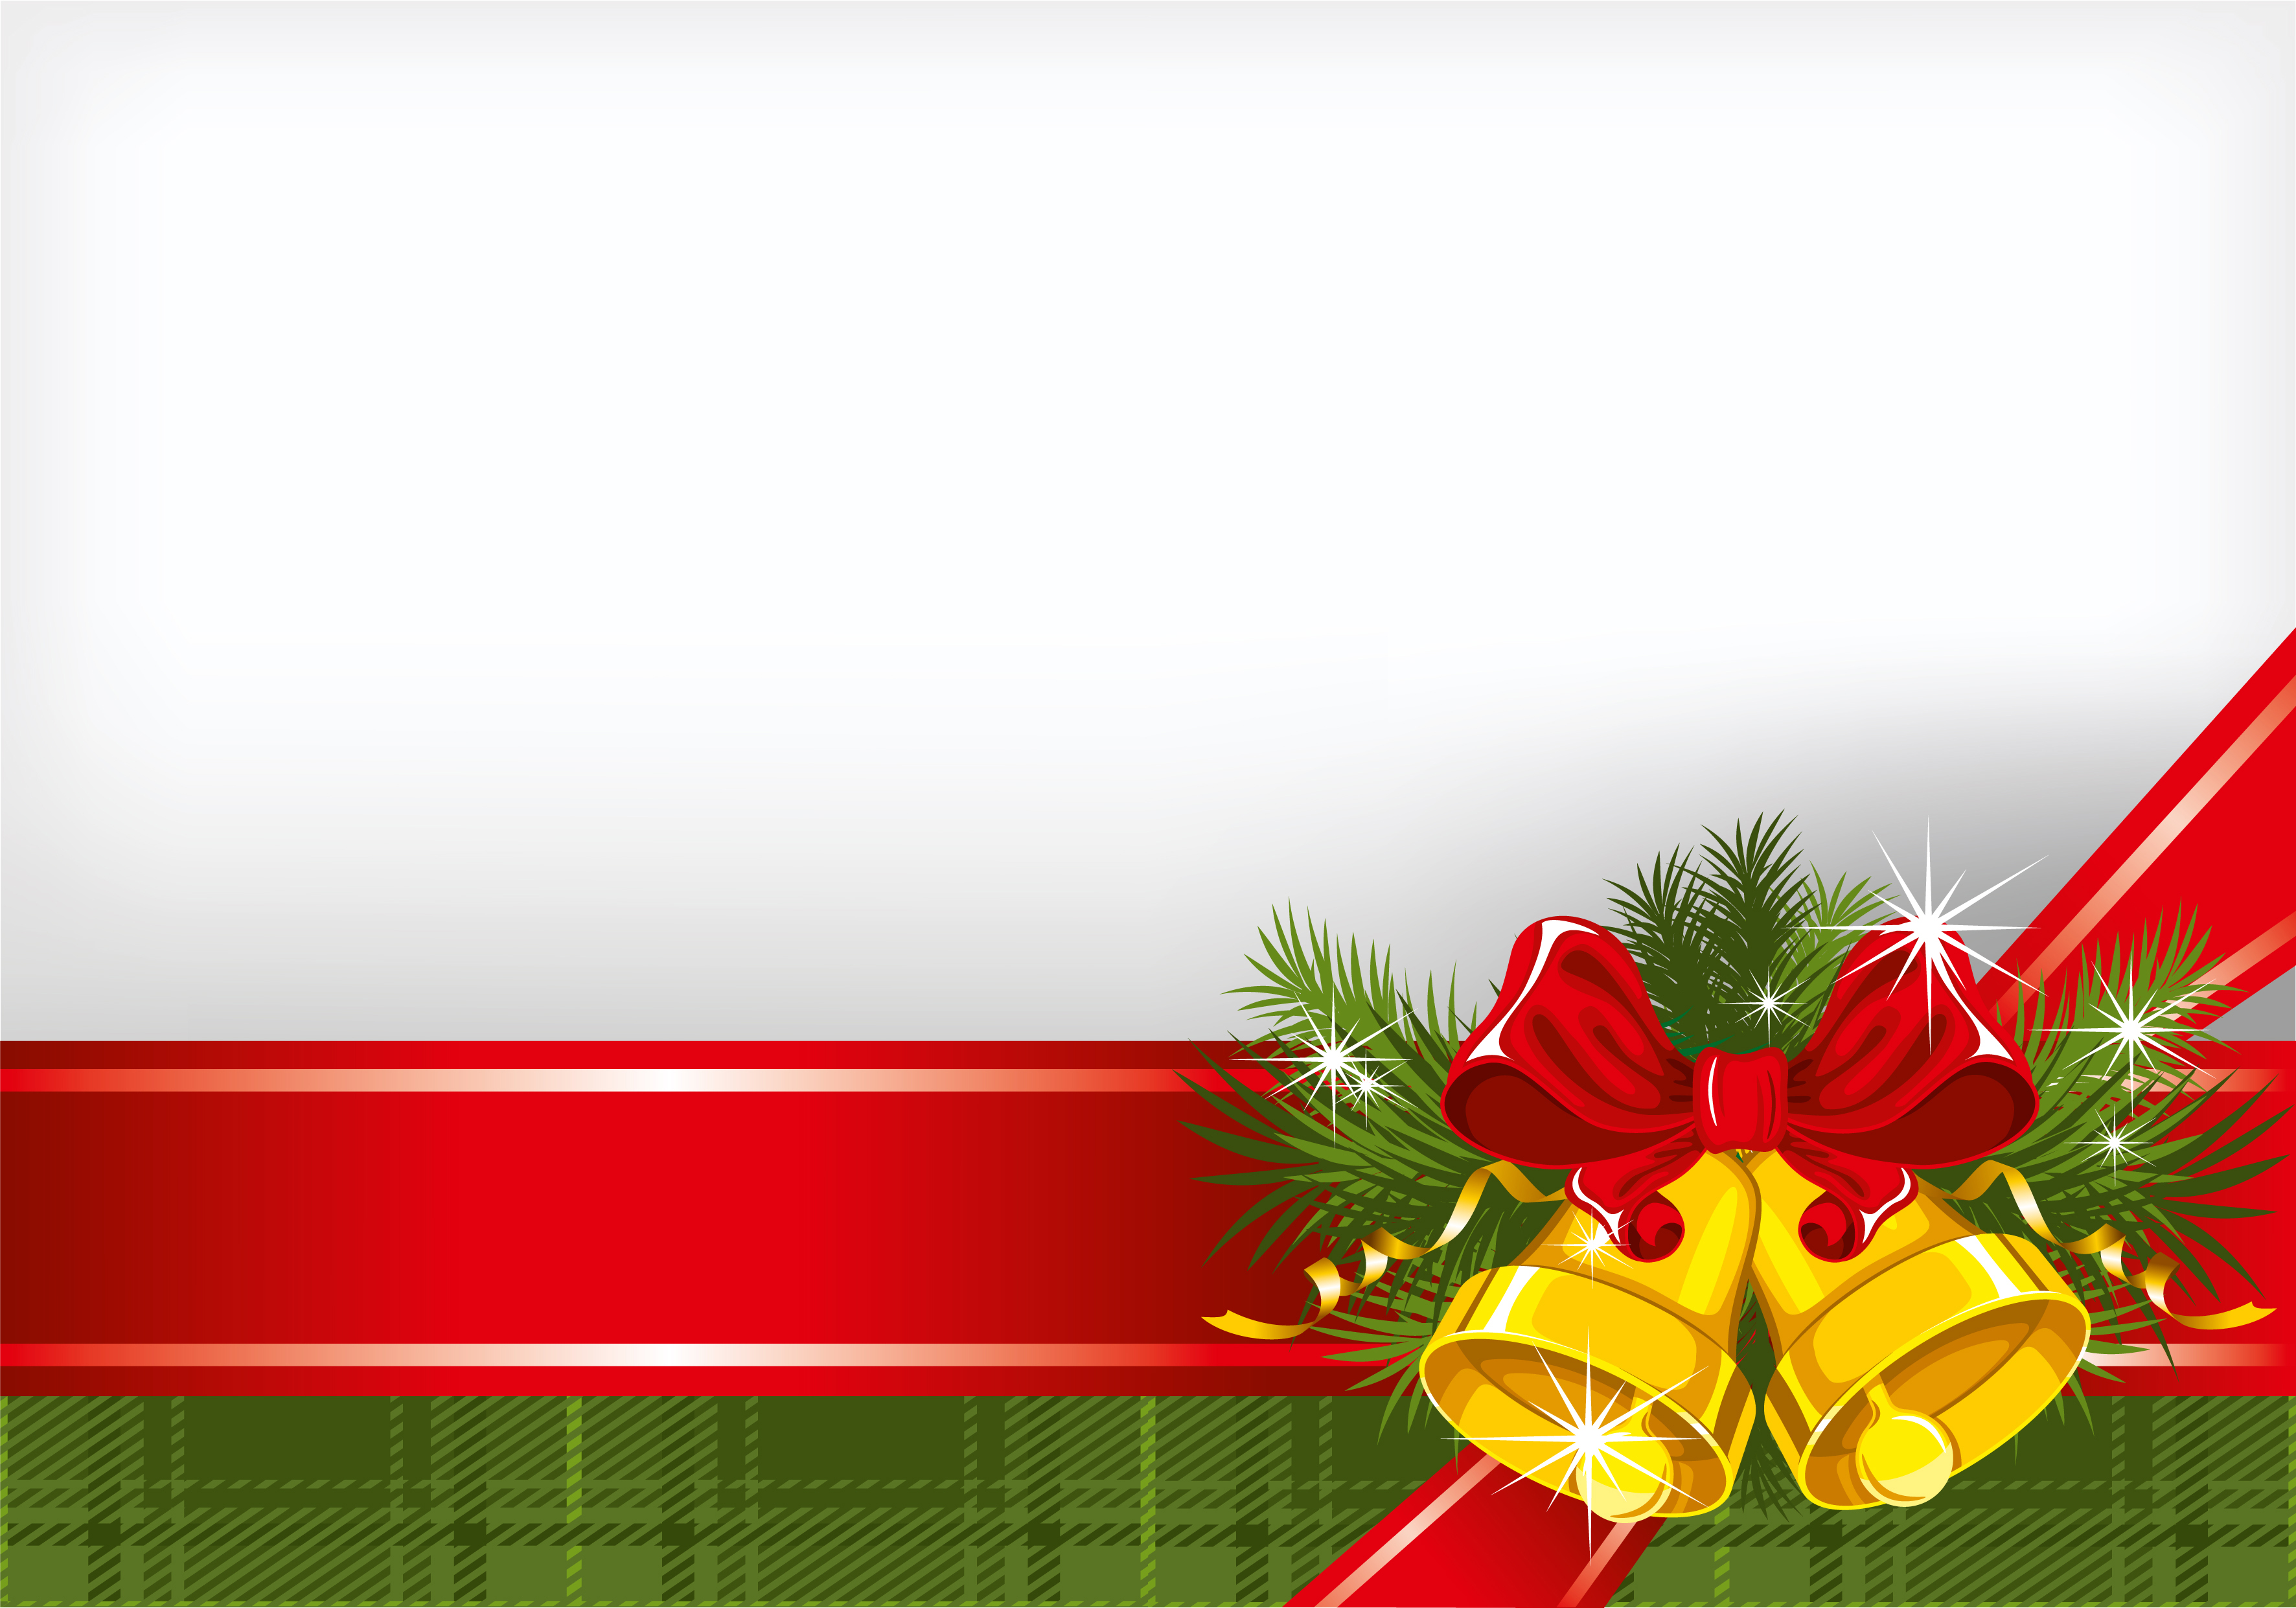 19 Free Christmas Backgrounds Vector Images